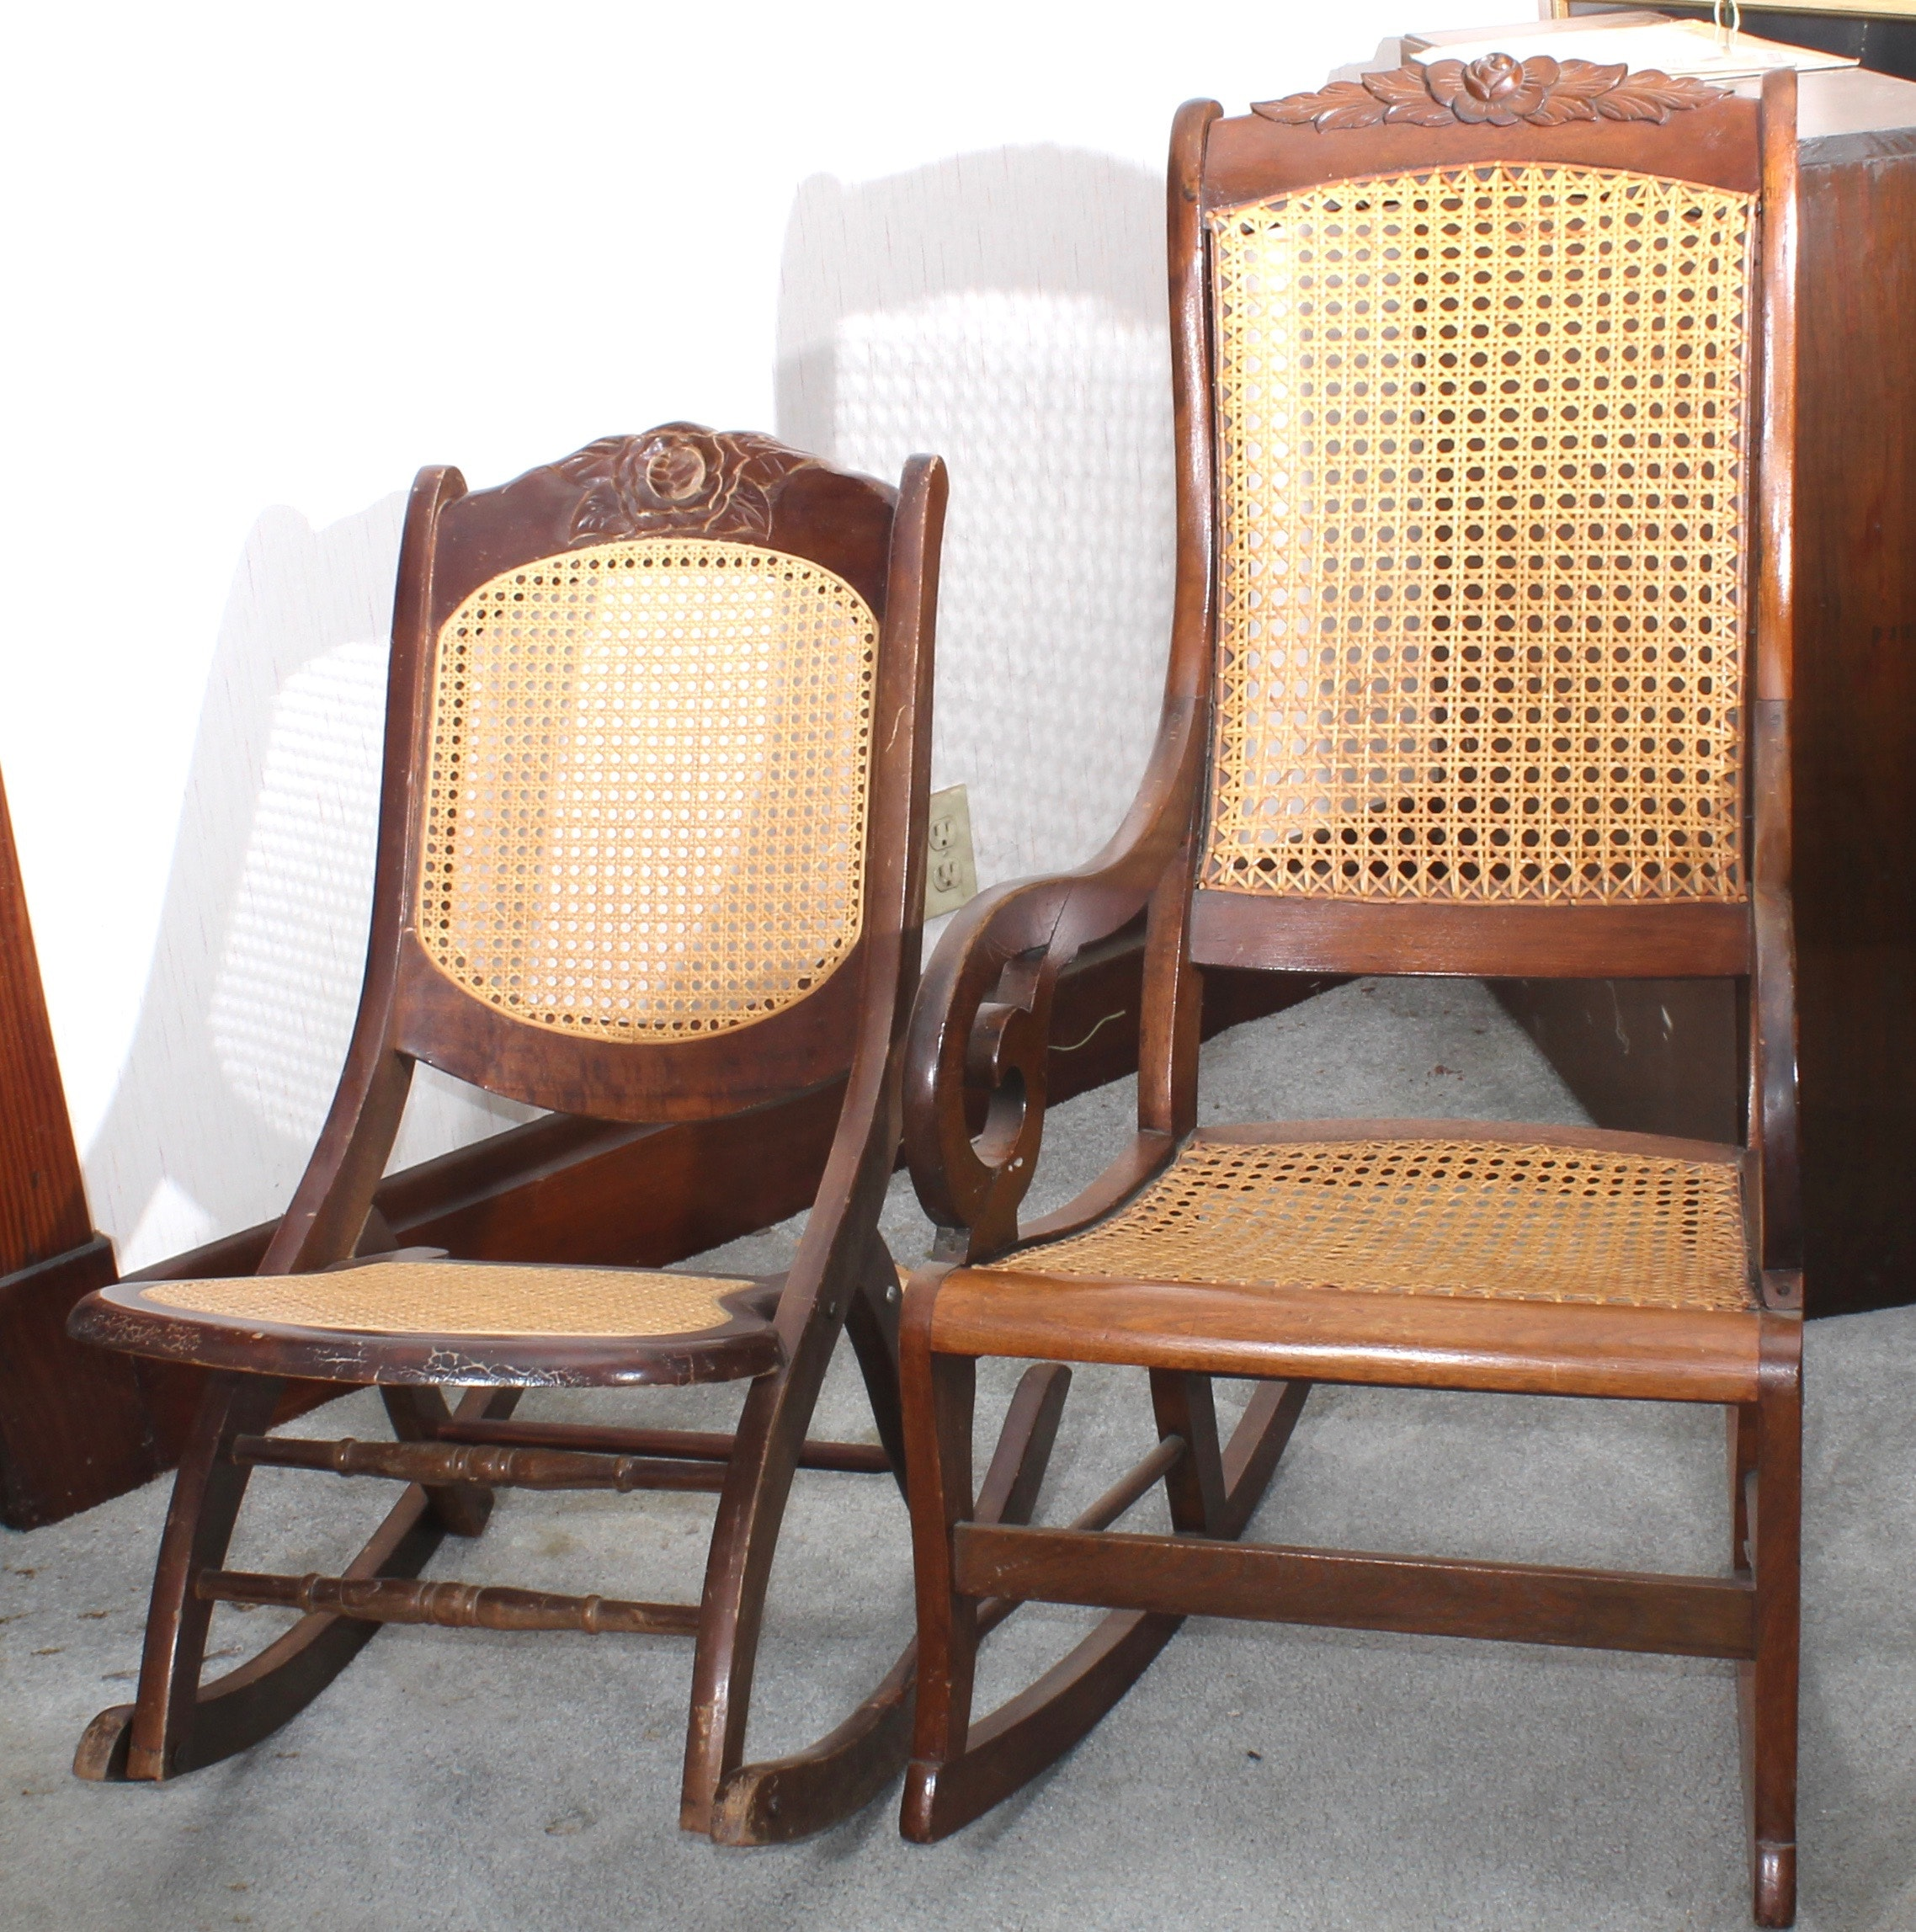 Vintage Wooden Rocking Chairs ...